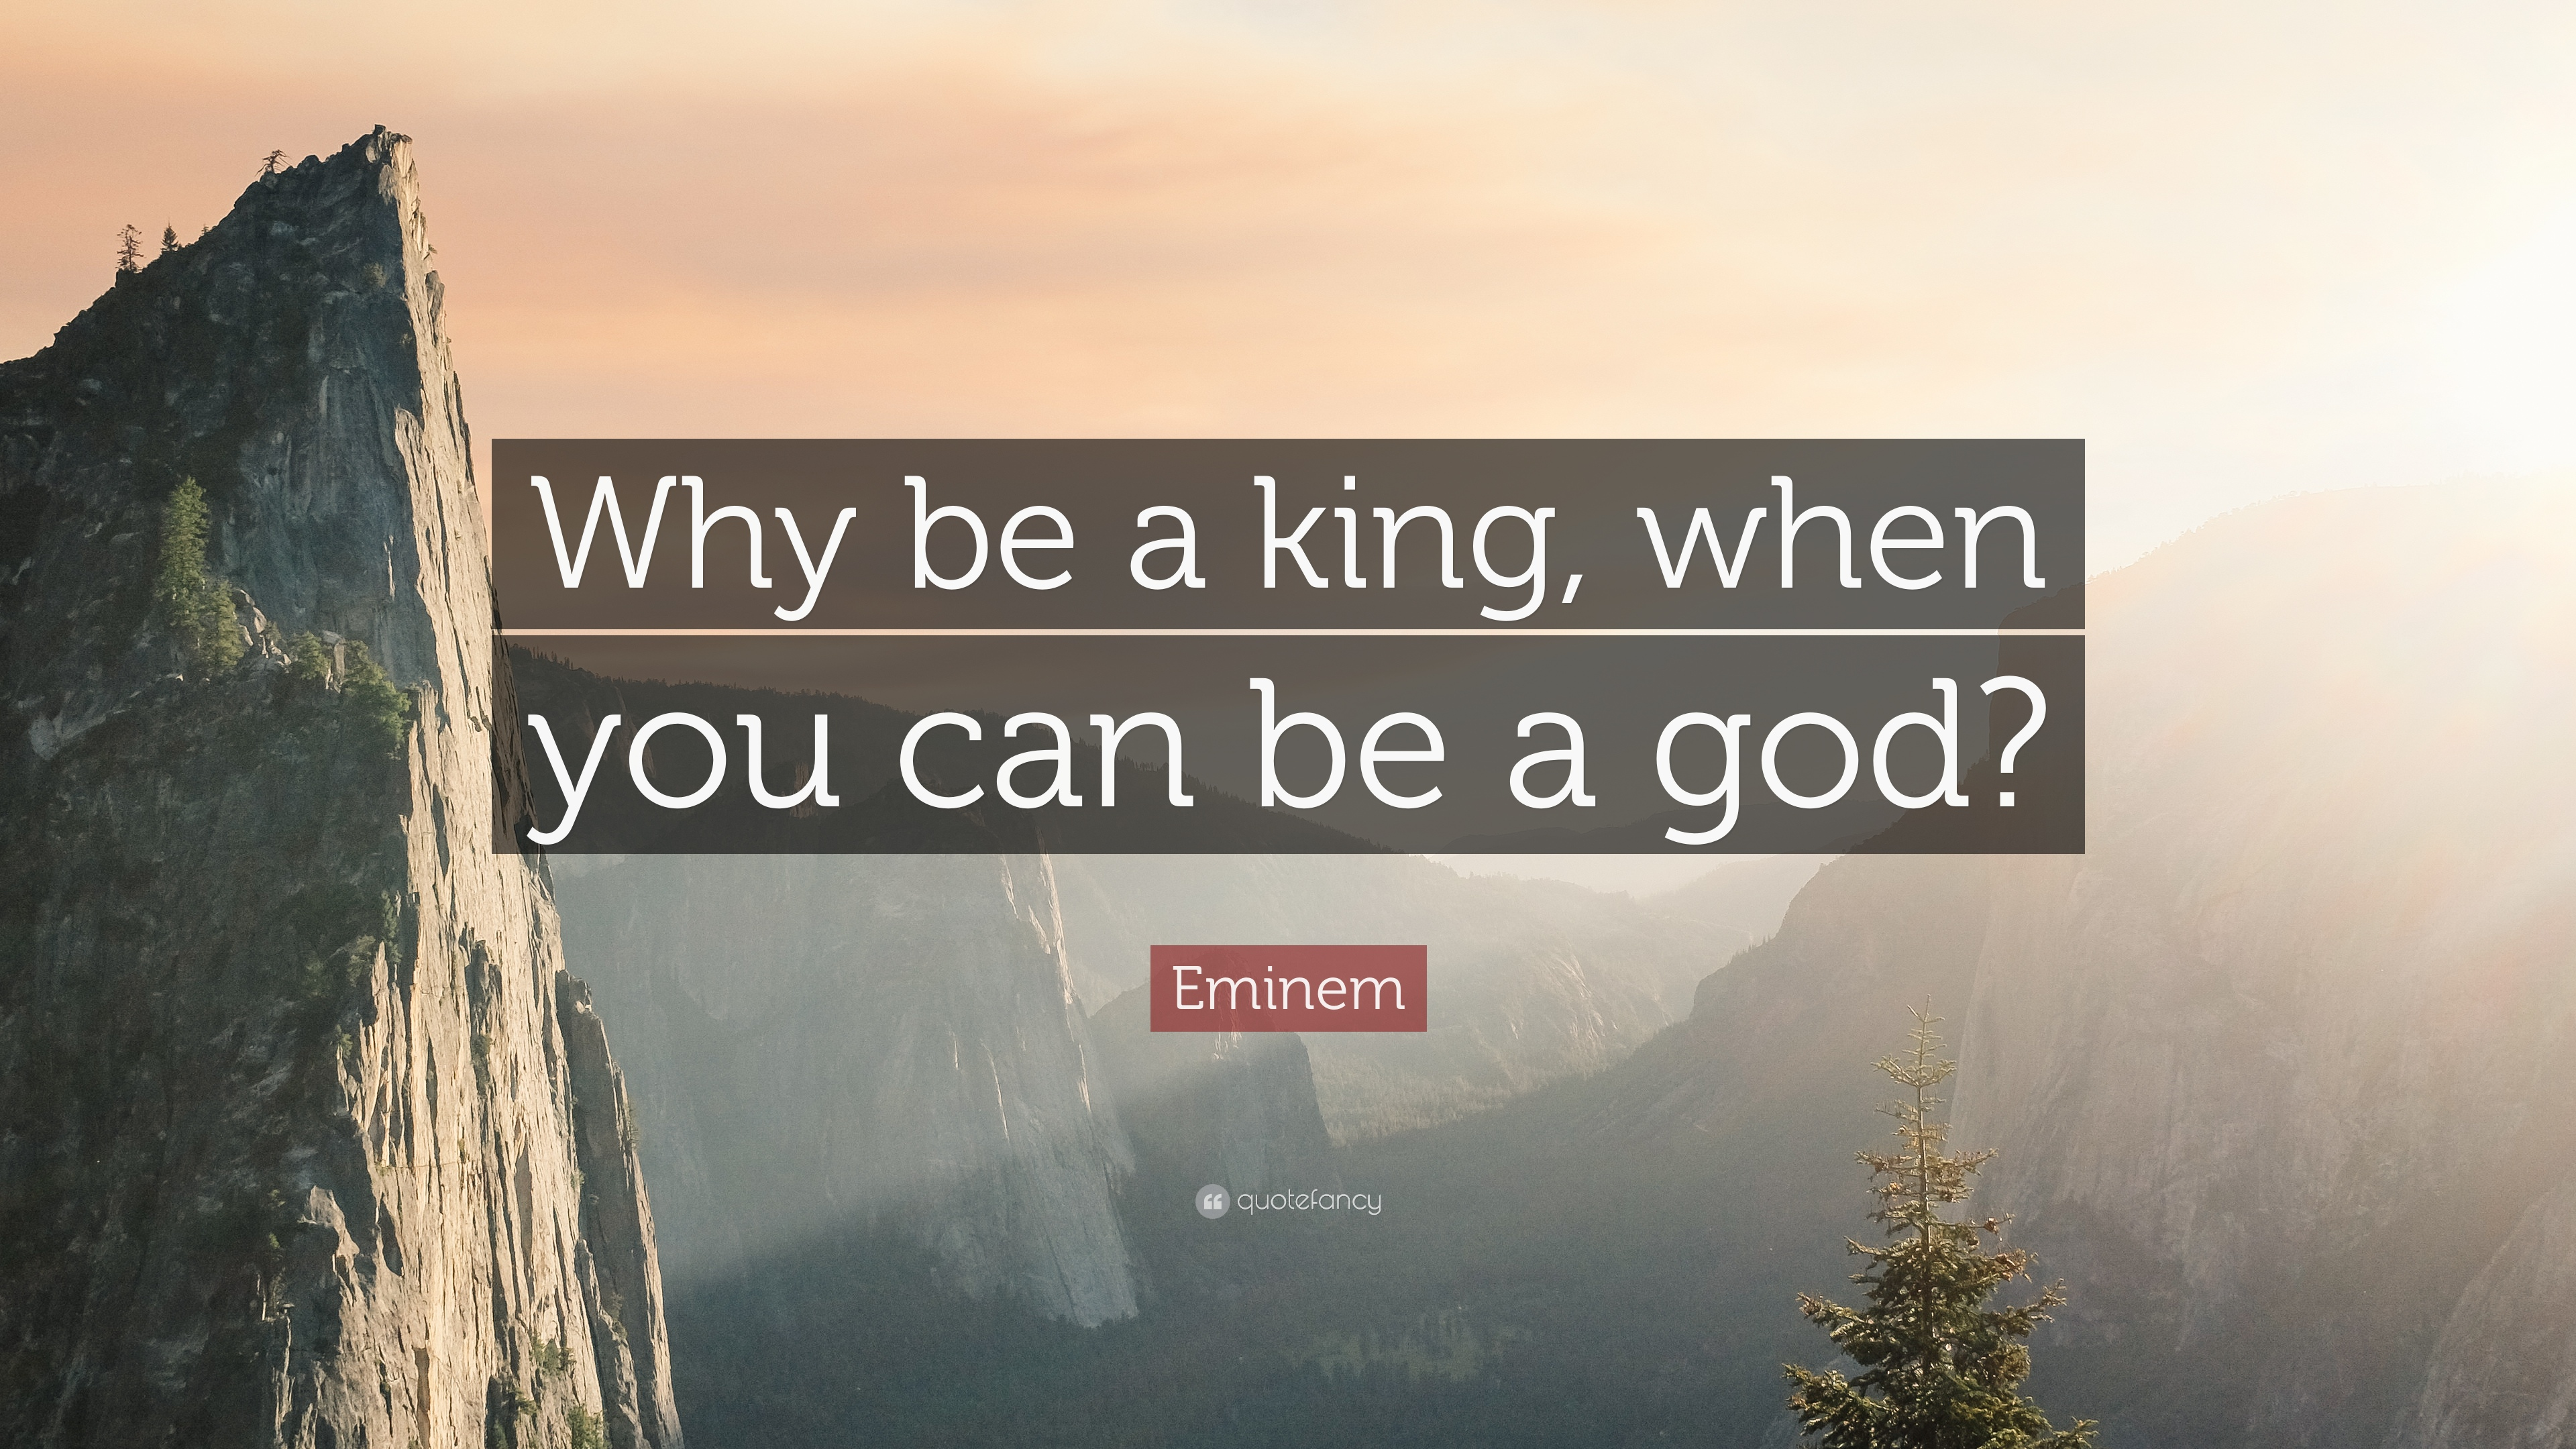 Osho Hd Wallpaper Eminem Quote Why Be A King When You Can Be A God 18